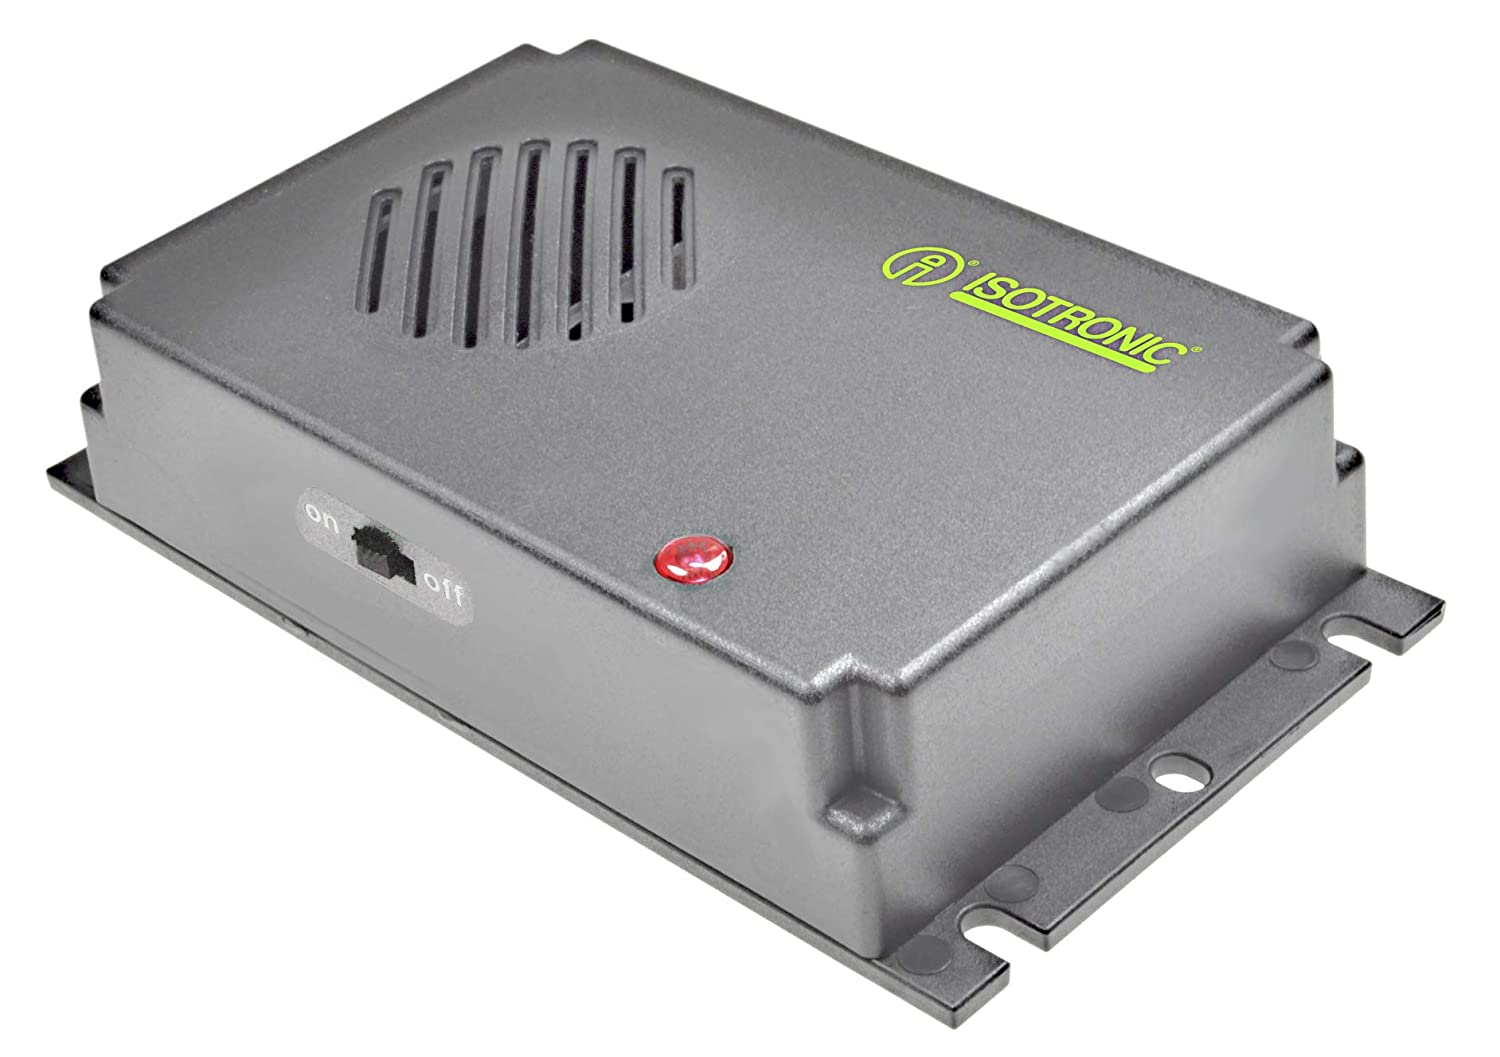 ISOTRONIC Mouse Rat repellent ultrasonic battery operated outdoor / indoor / garden no mice rodent